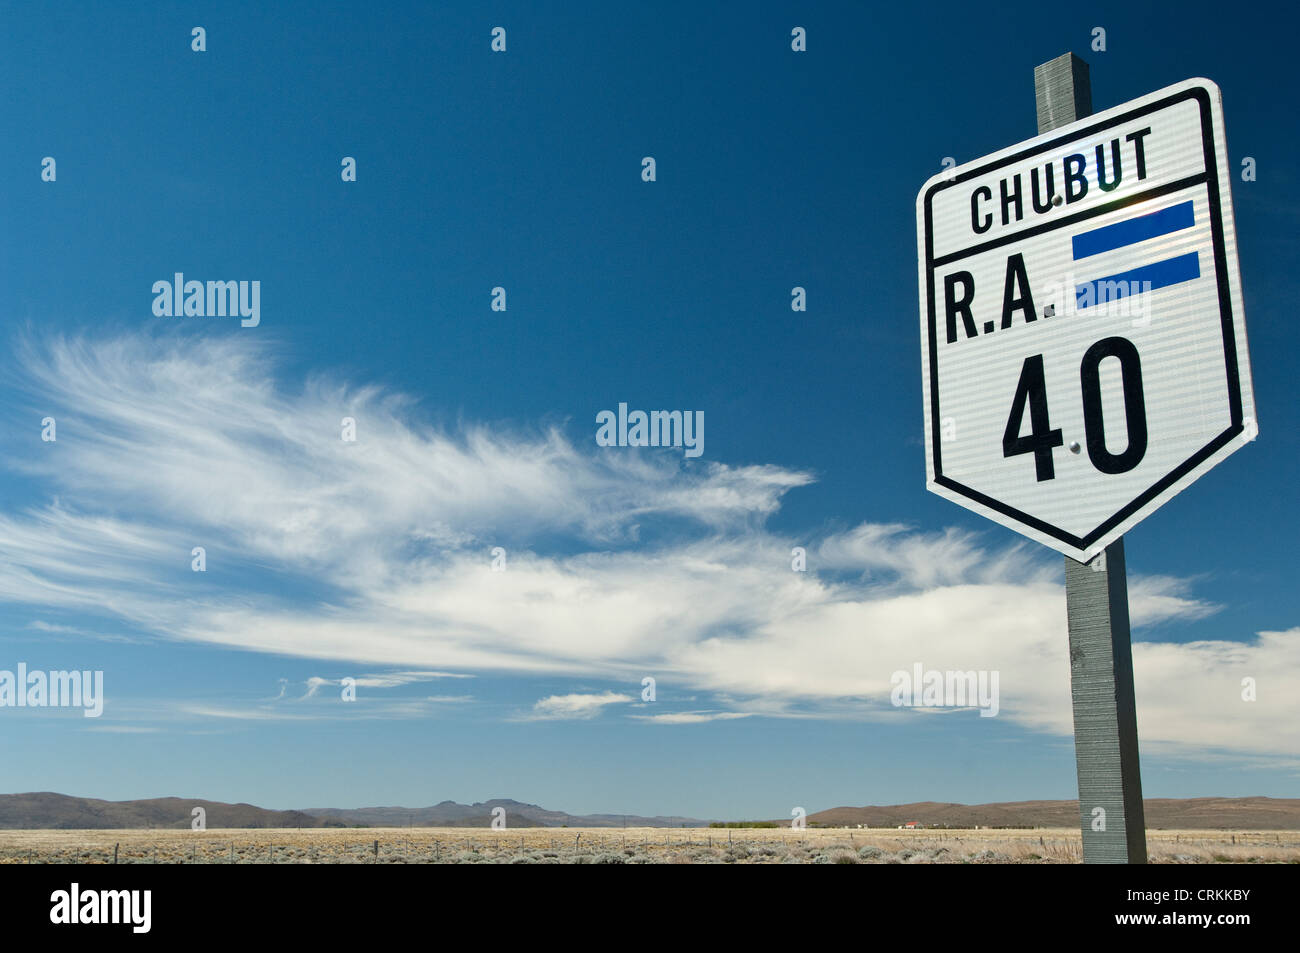 Route 40 road sign Chubut Provence, Patagonia, Argentina, South America - Stock Image